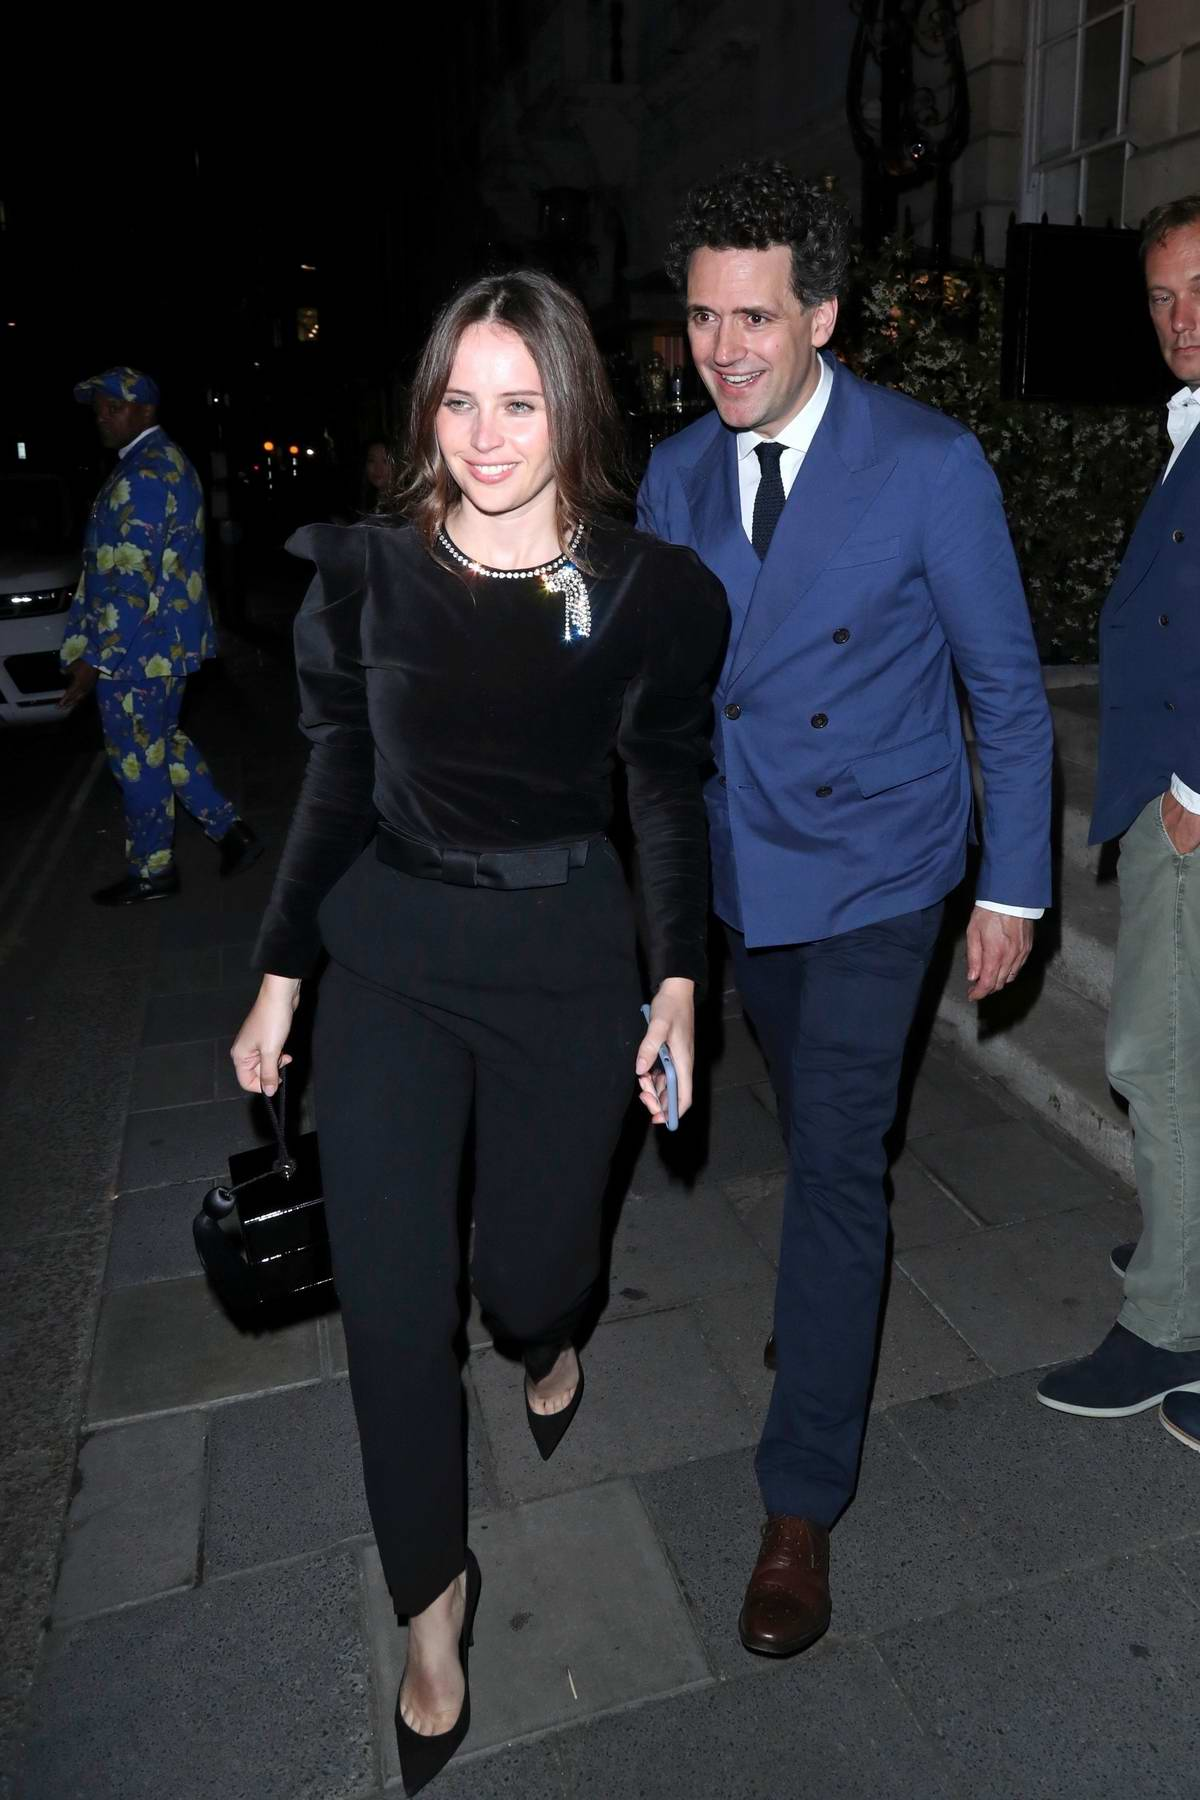 Felicity Jones and husband Charles Guard seen leaving Annabel's Members Club in London, UK